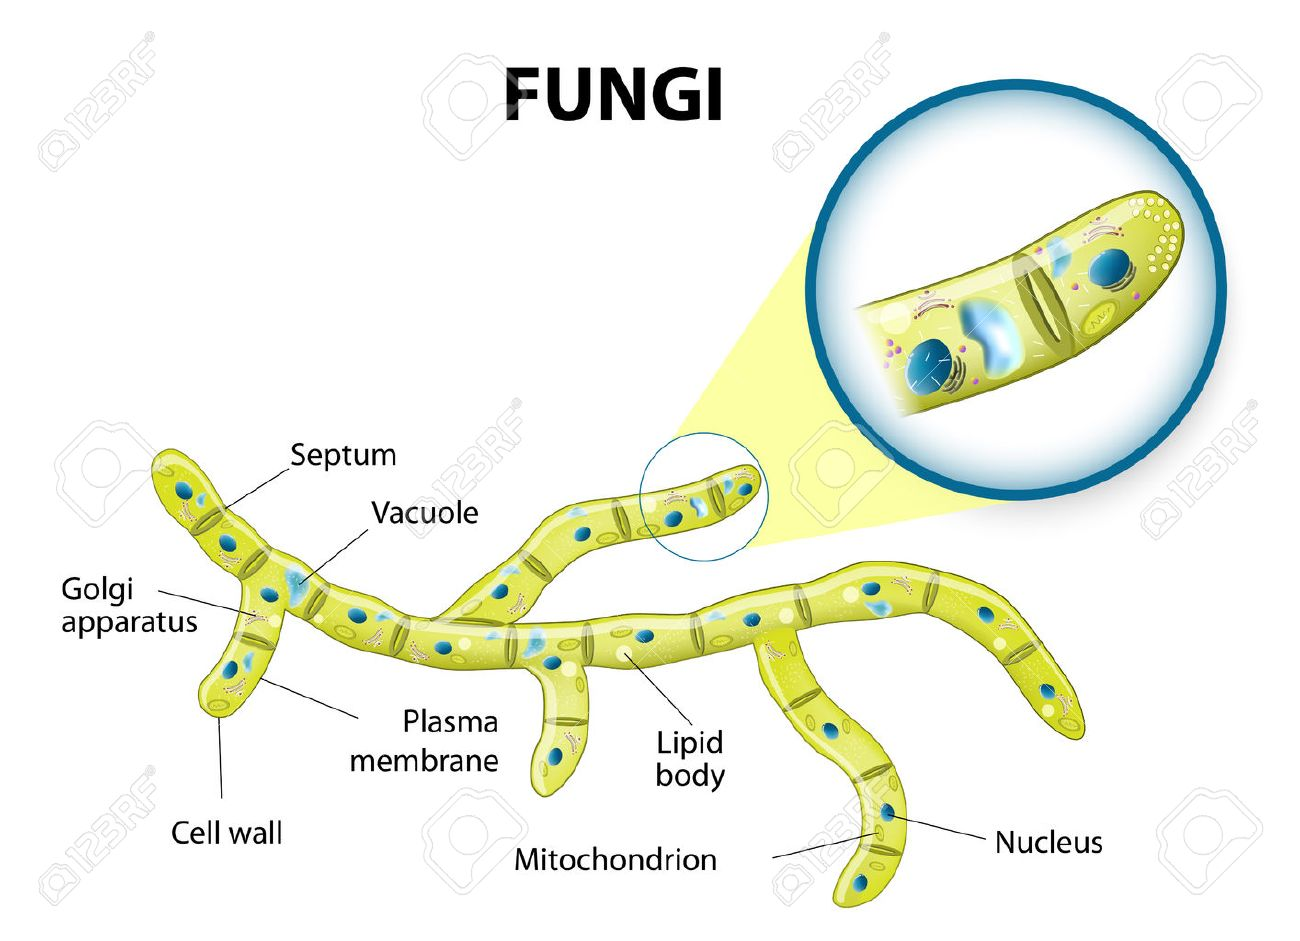 hight resolution of typical fungi cell fungal hyphae structure fungi diagram illustrating the ultrastructure of a